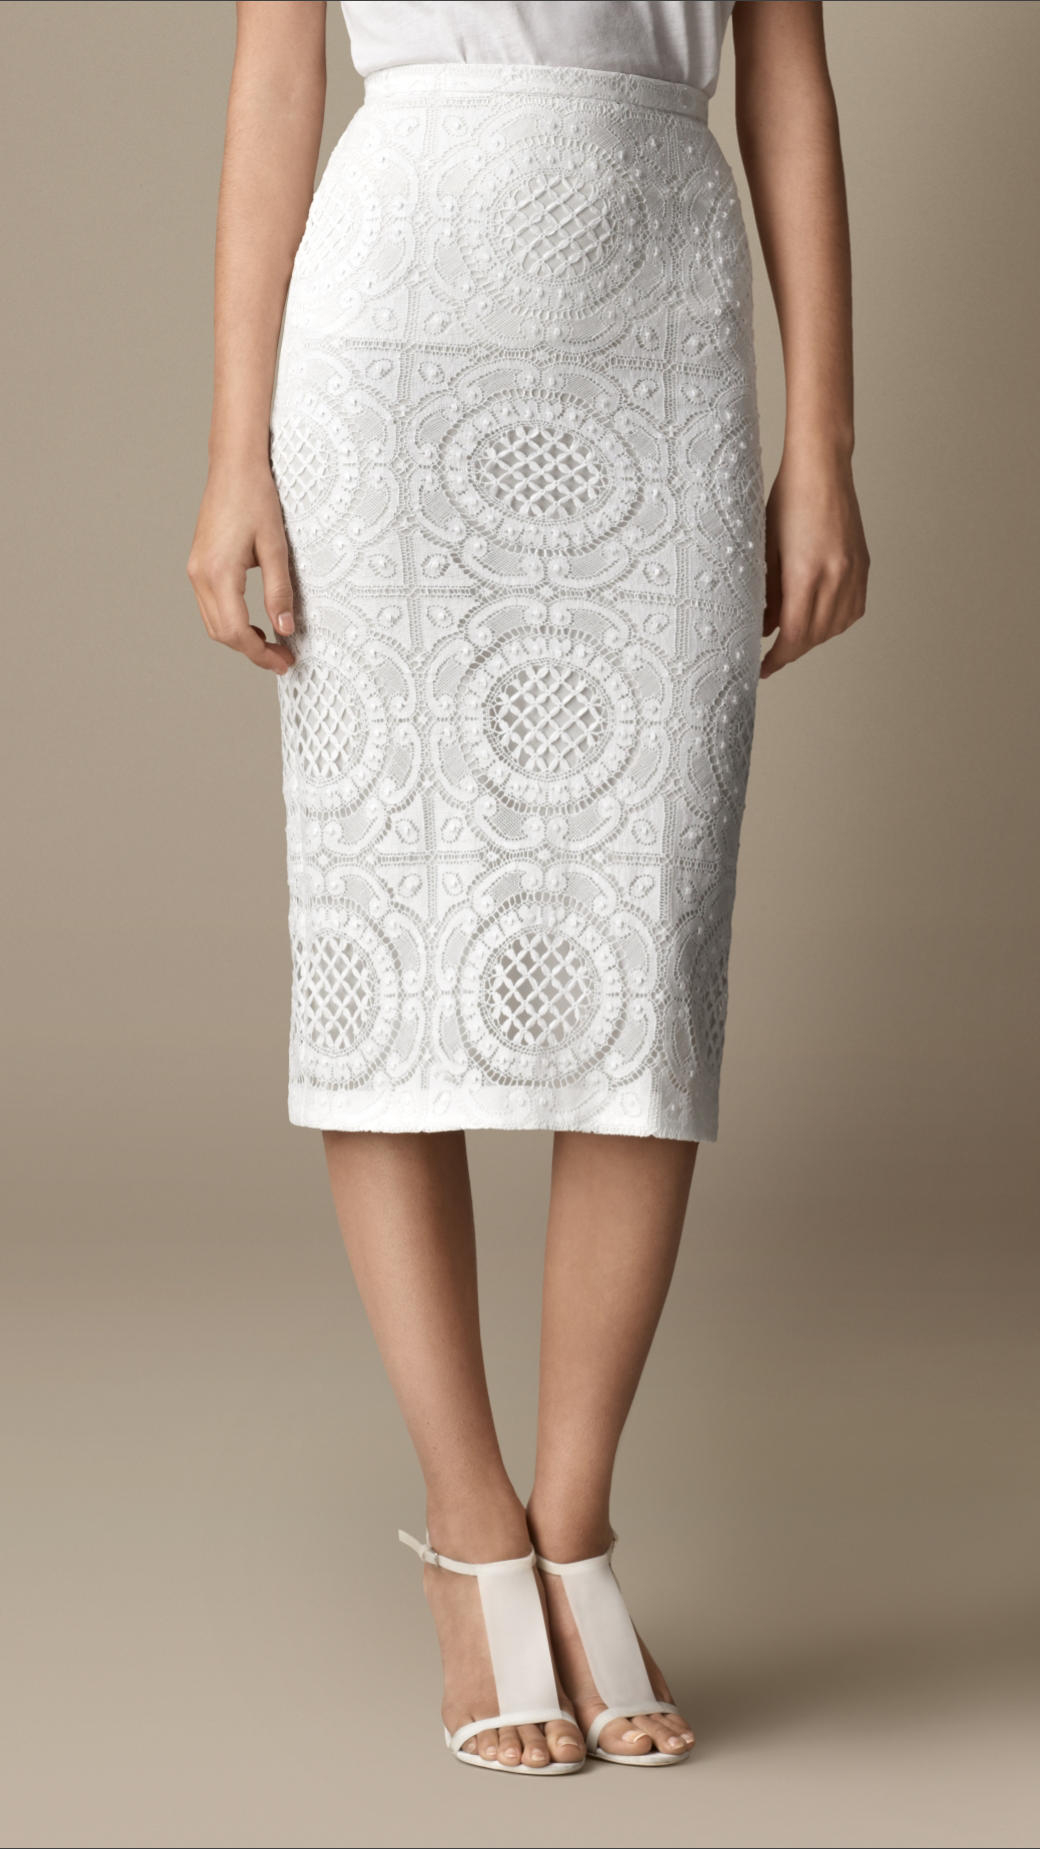 Burberry Lace Pencil Skirt in White | Lyst